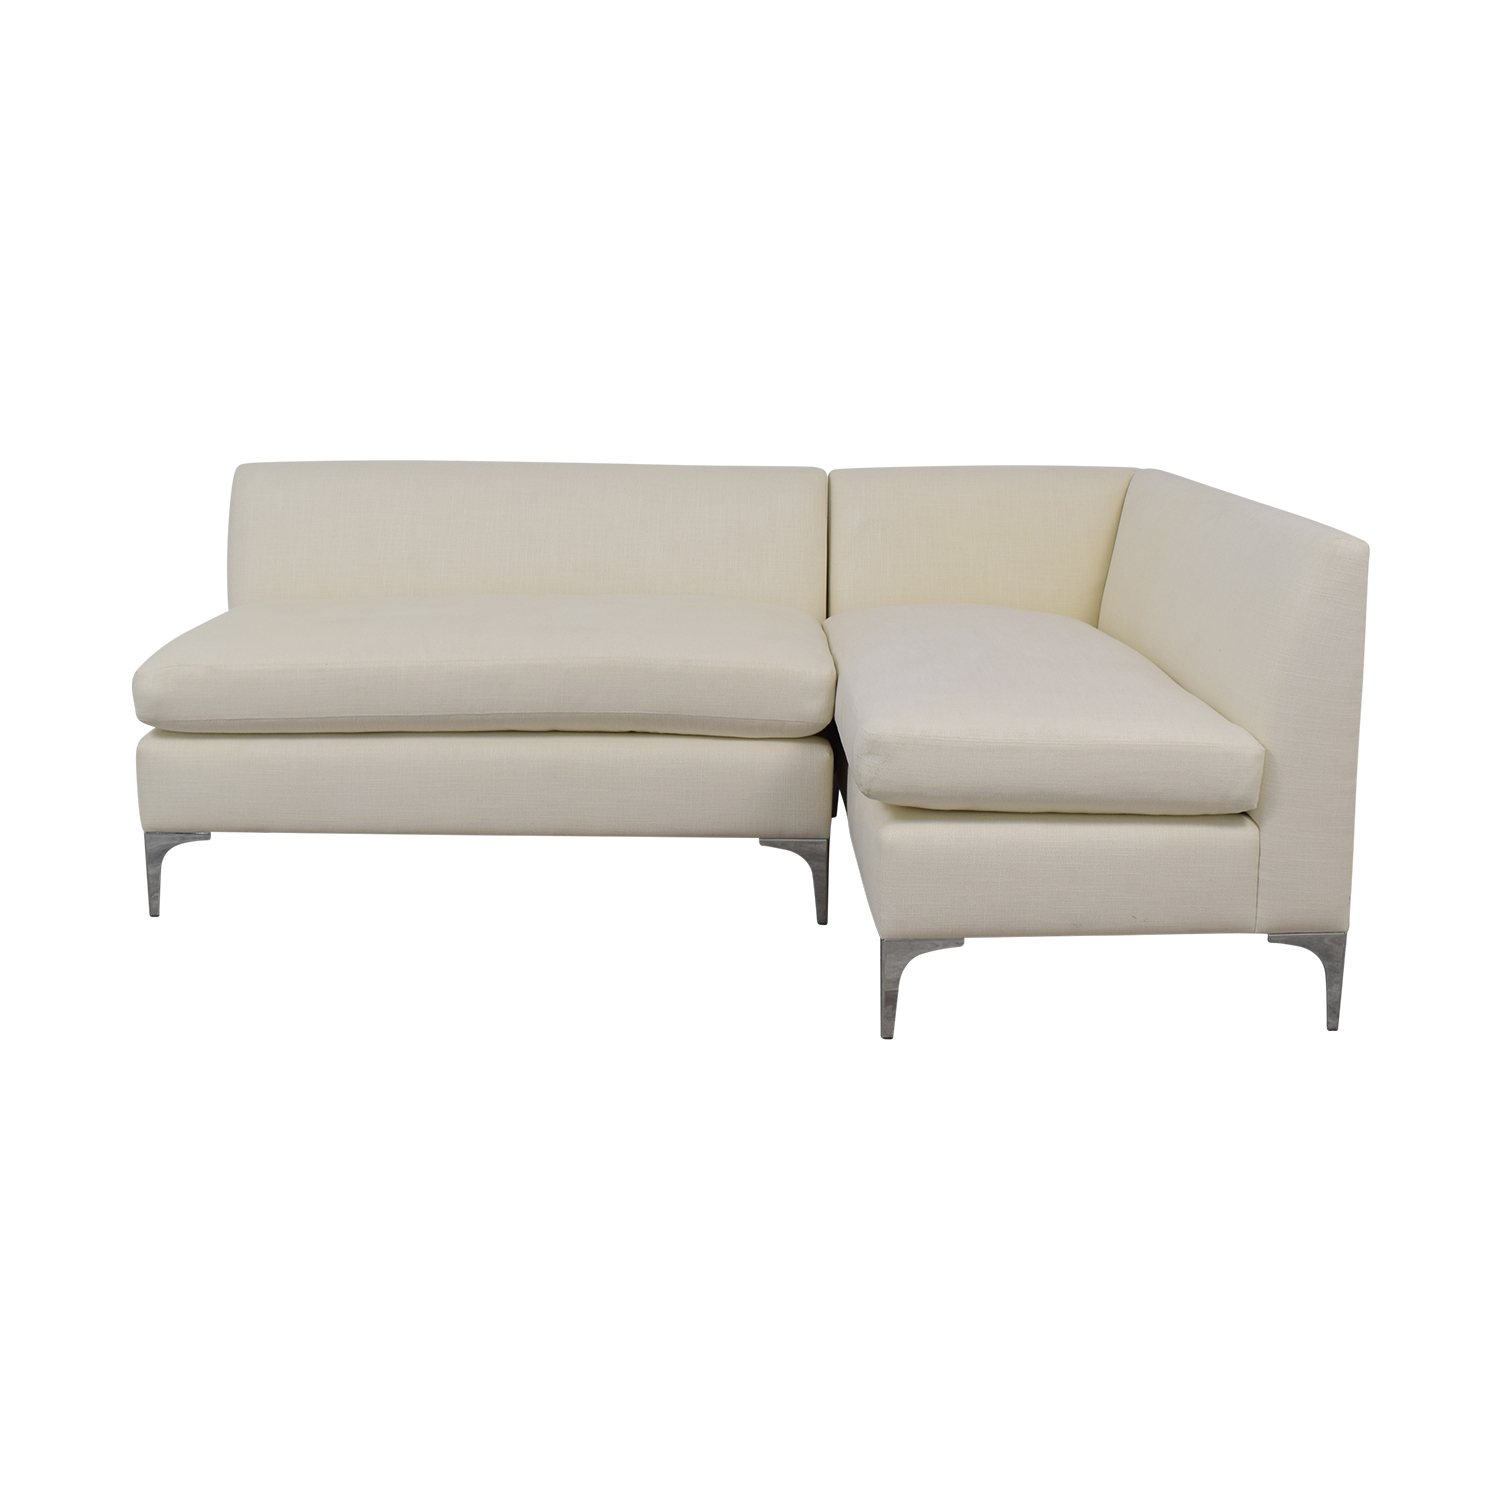 Paoli Paoli Custom Two-Piece Banquette price